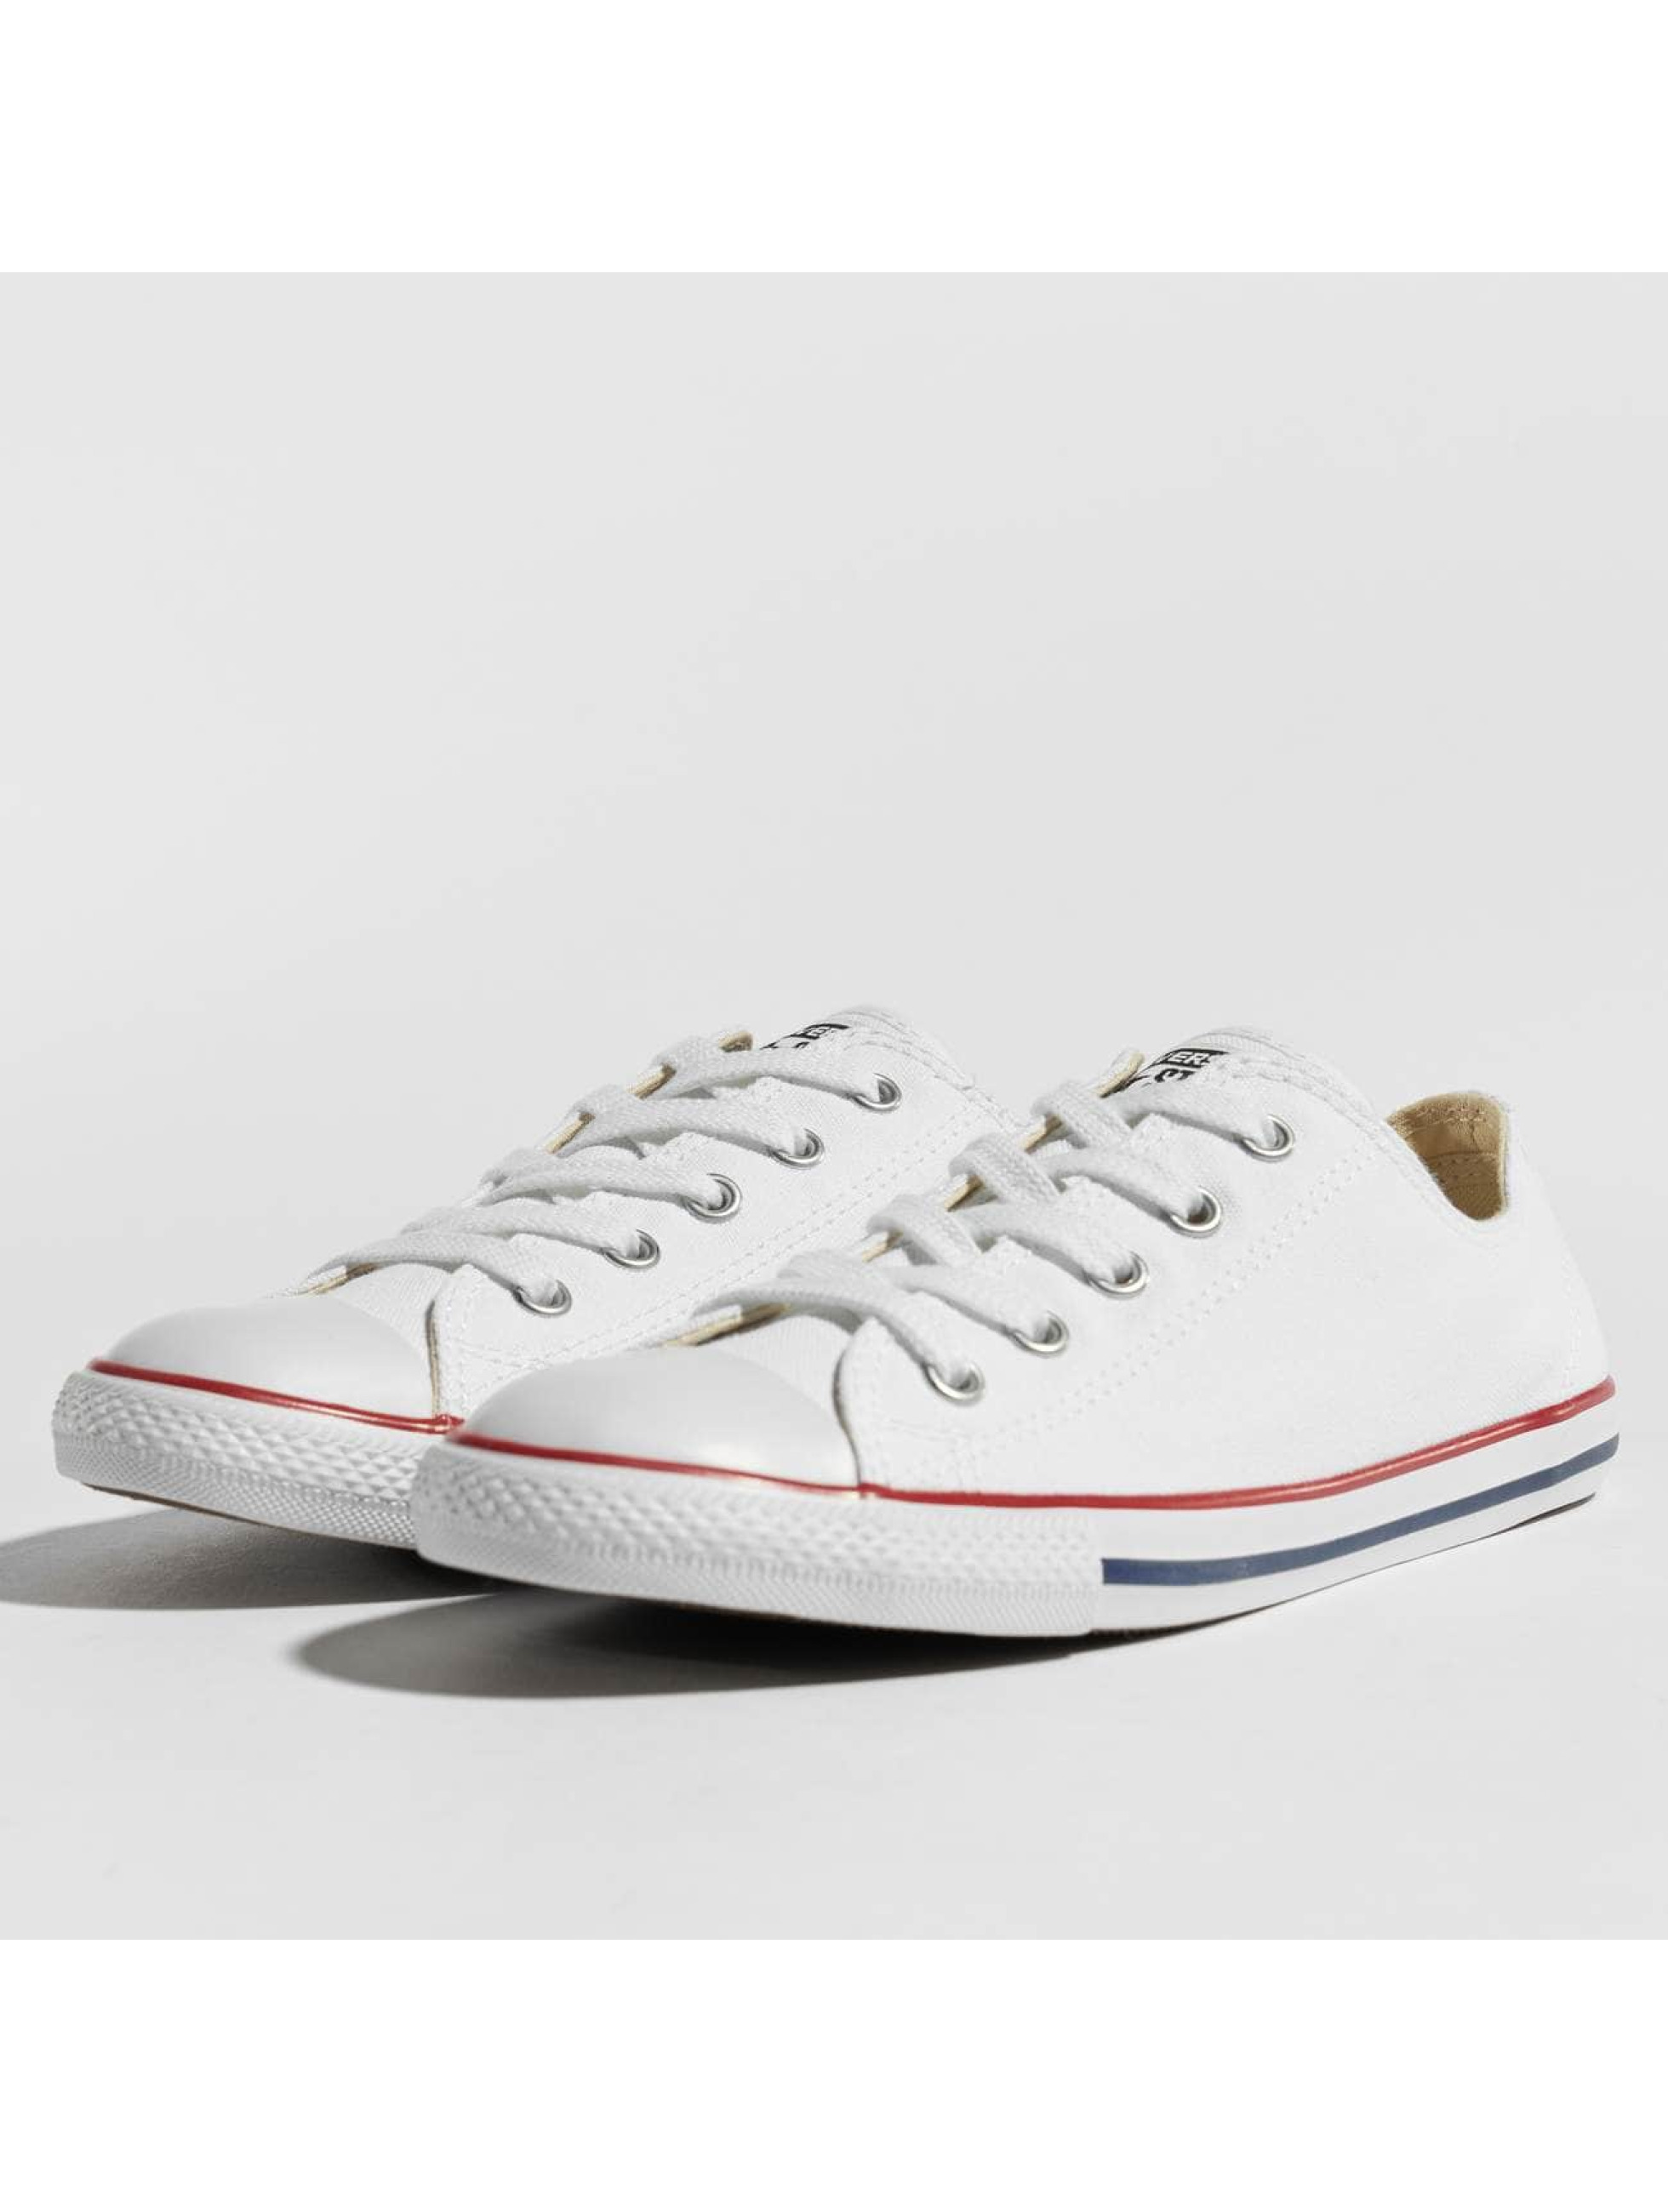 Converse sneaker All Star Dainty Ox Chucks wit